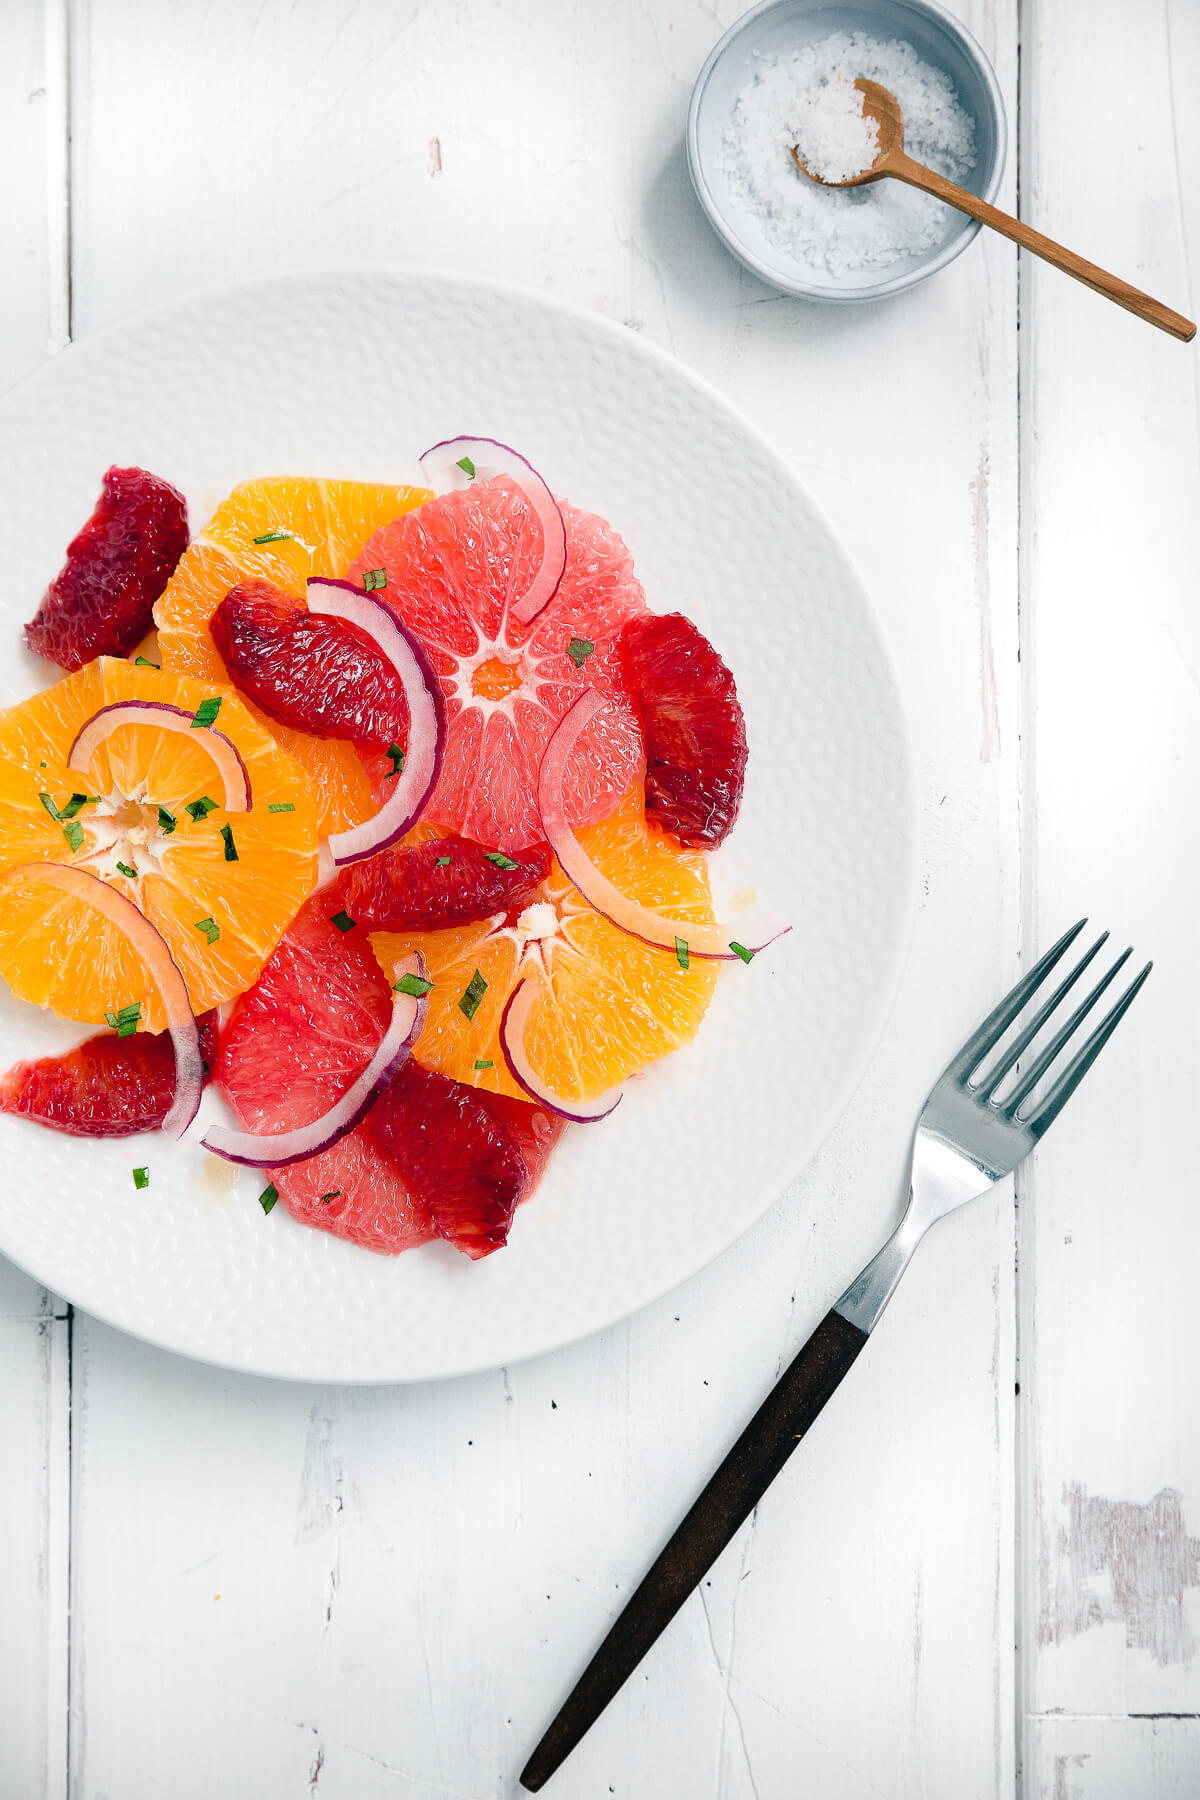 Overhead shot of a citrus salad with grapefruit, blood oranges, and navel oranges on a white plate.